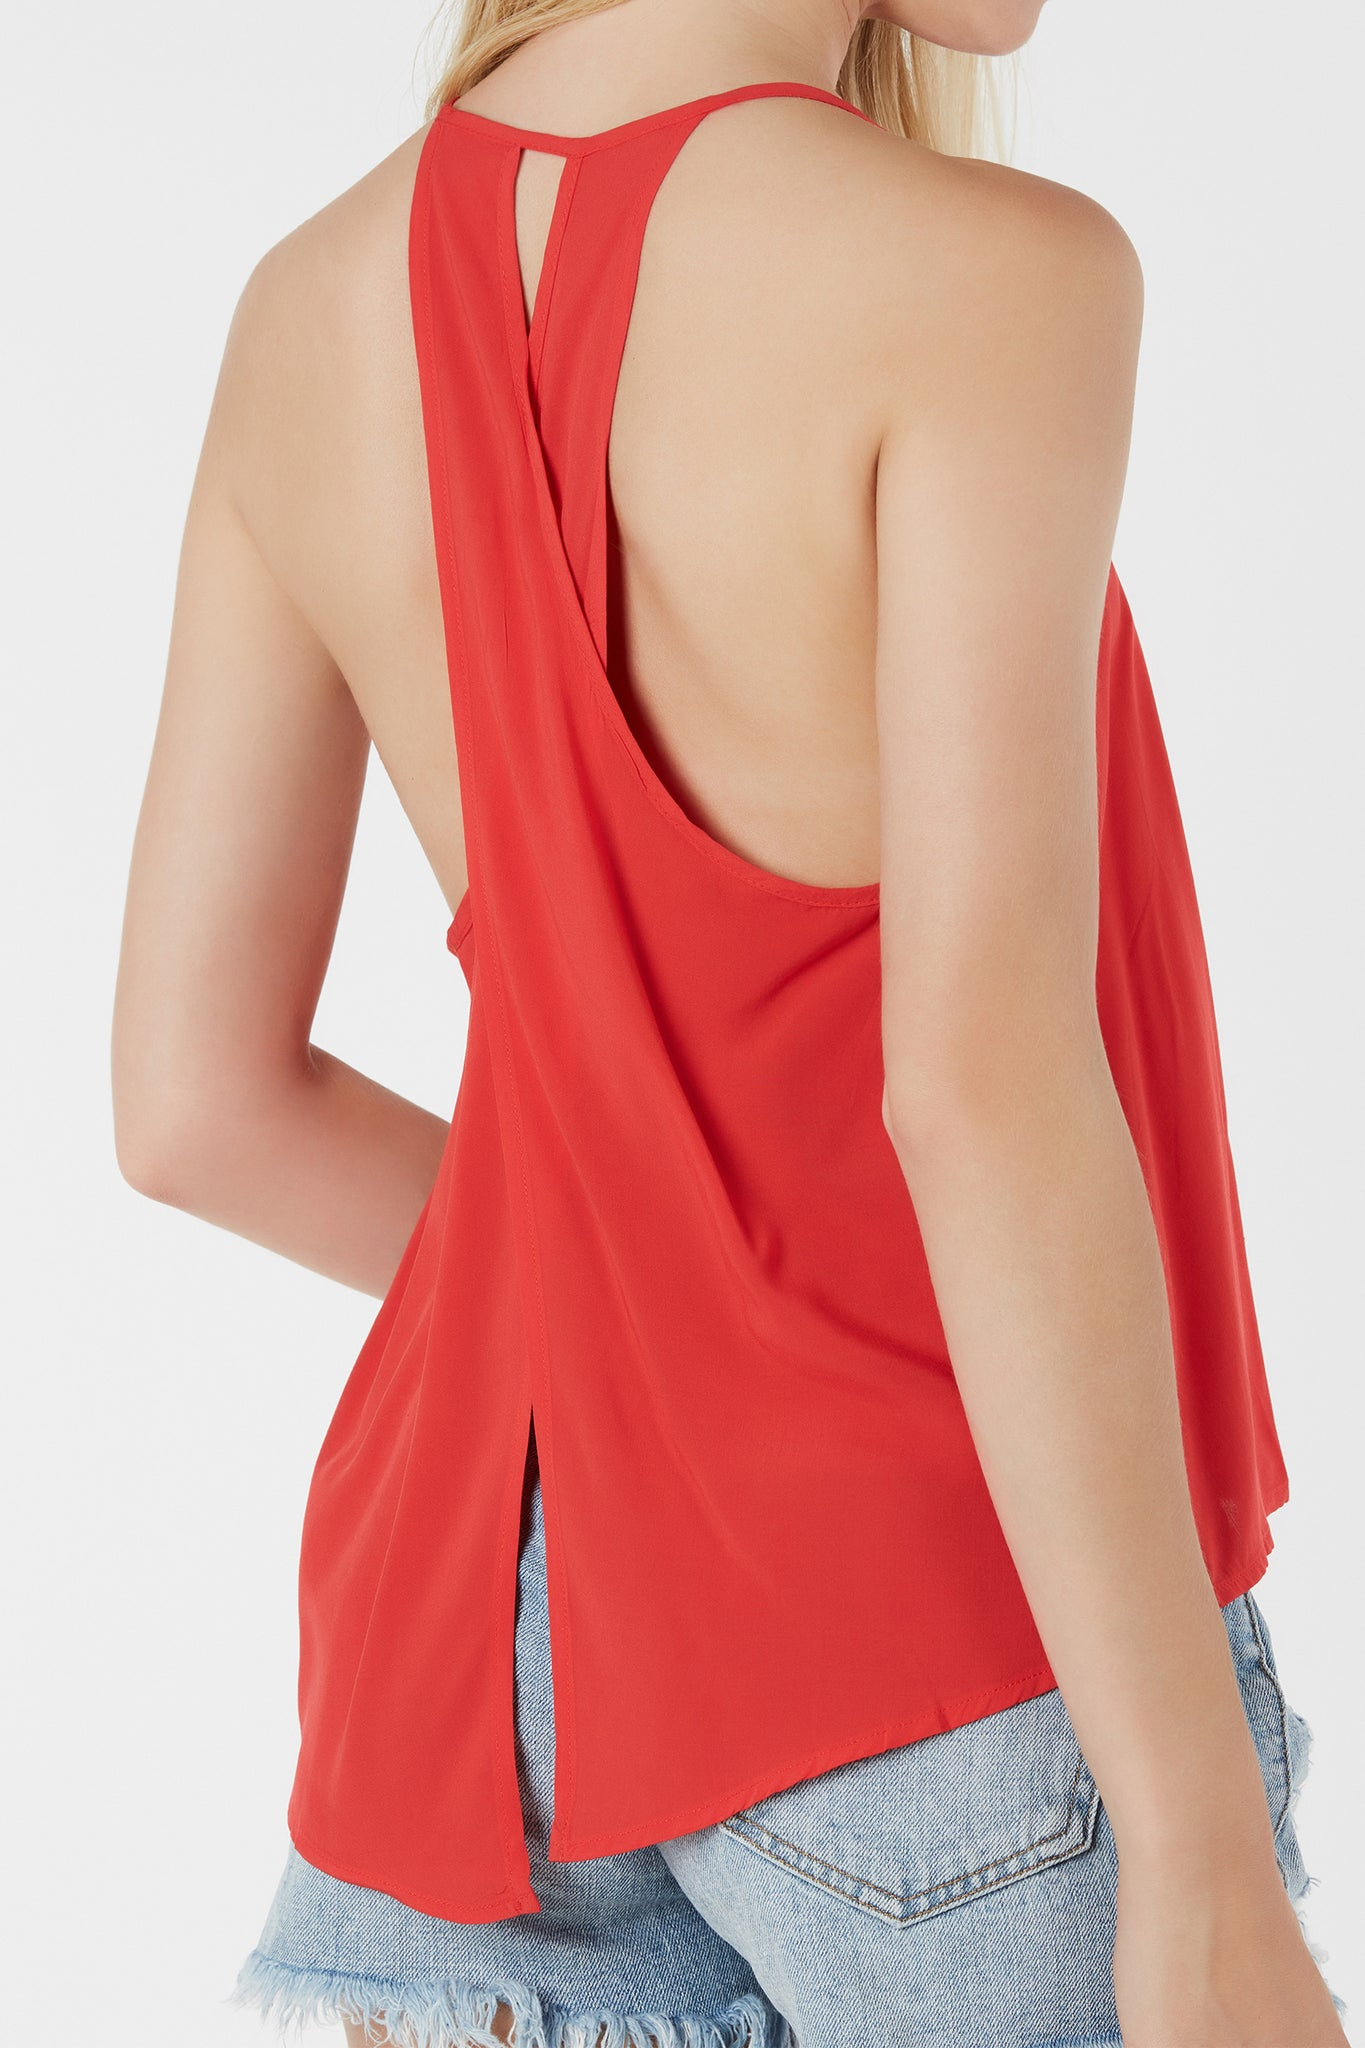 Lightweight high neck cami with tulip back design. Keyhold cut out with flowy fit.